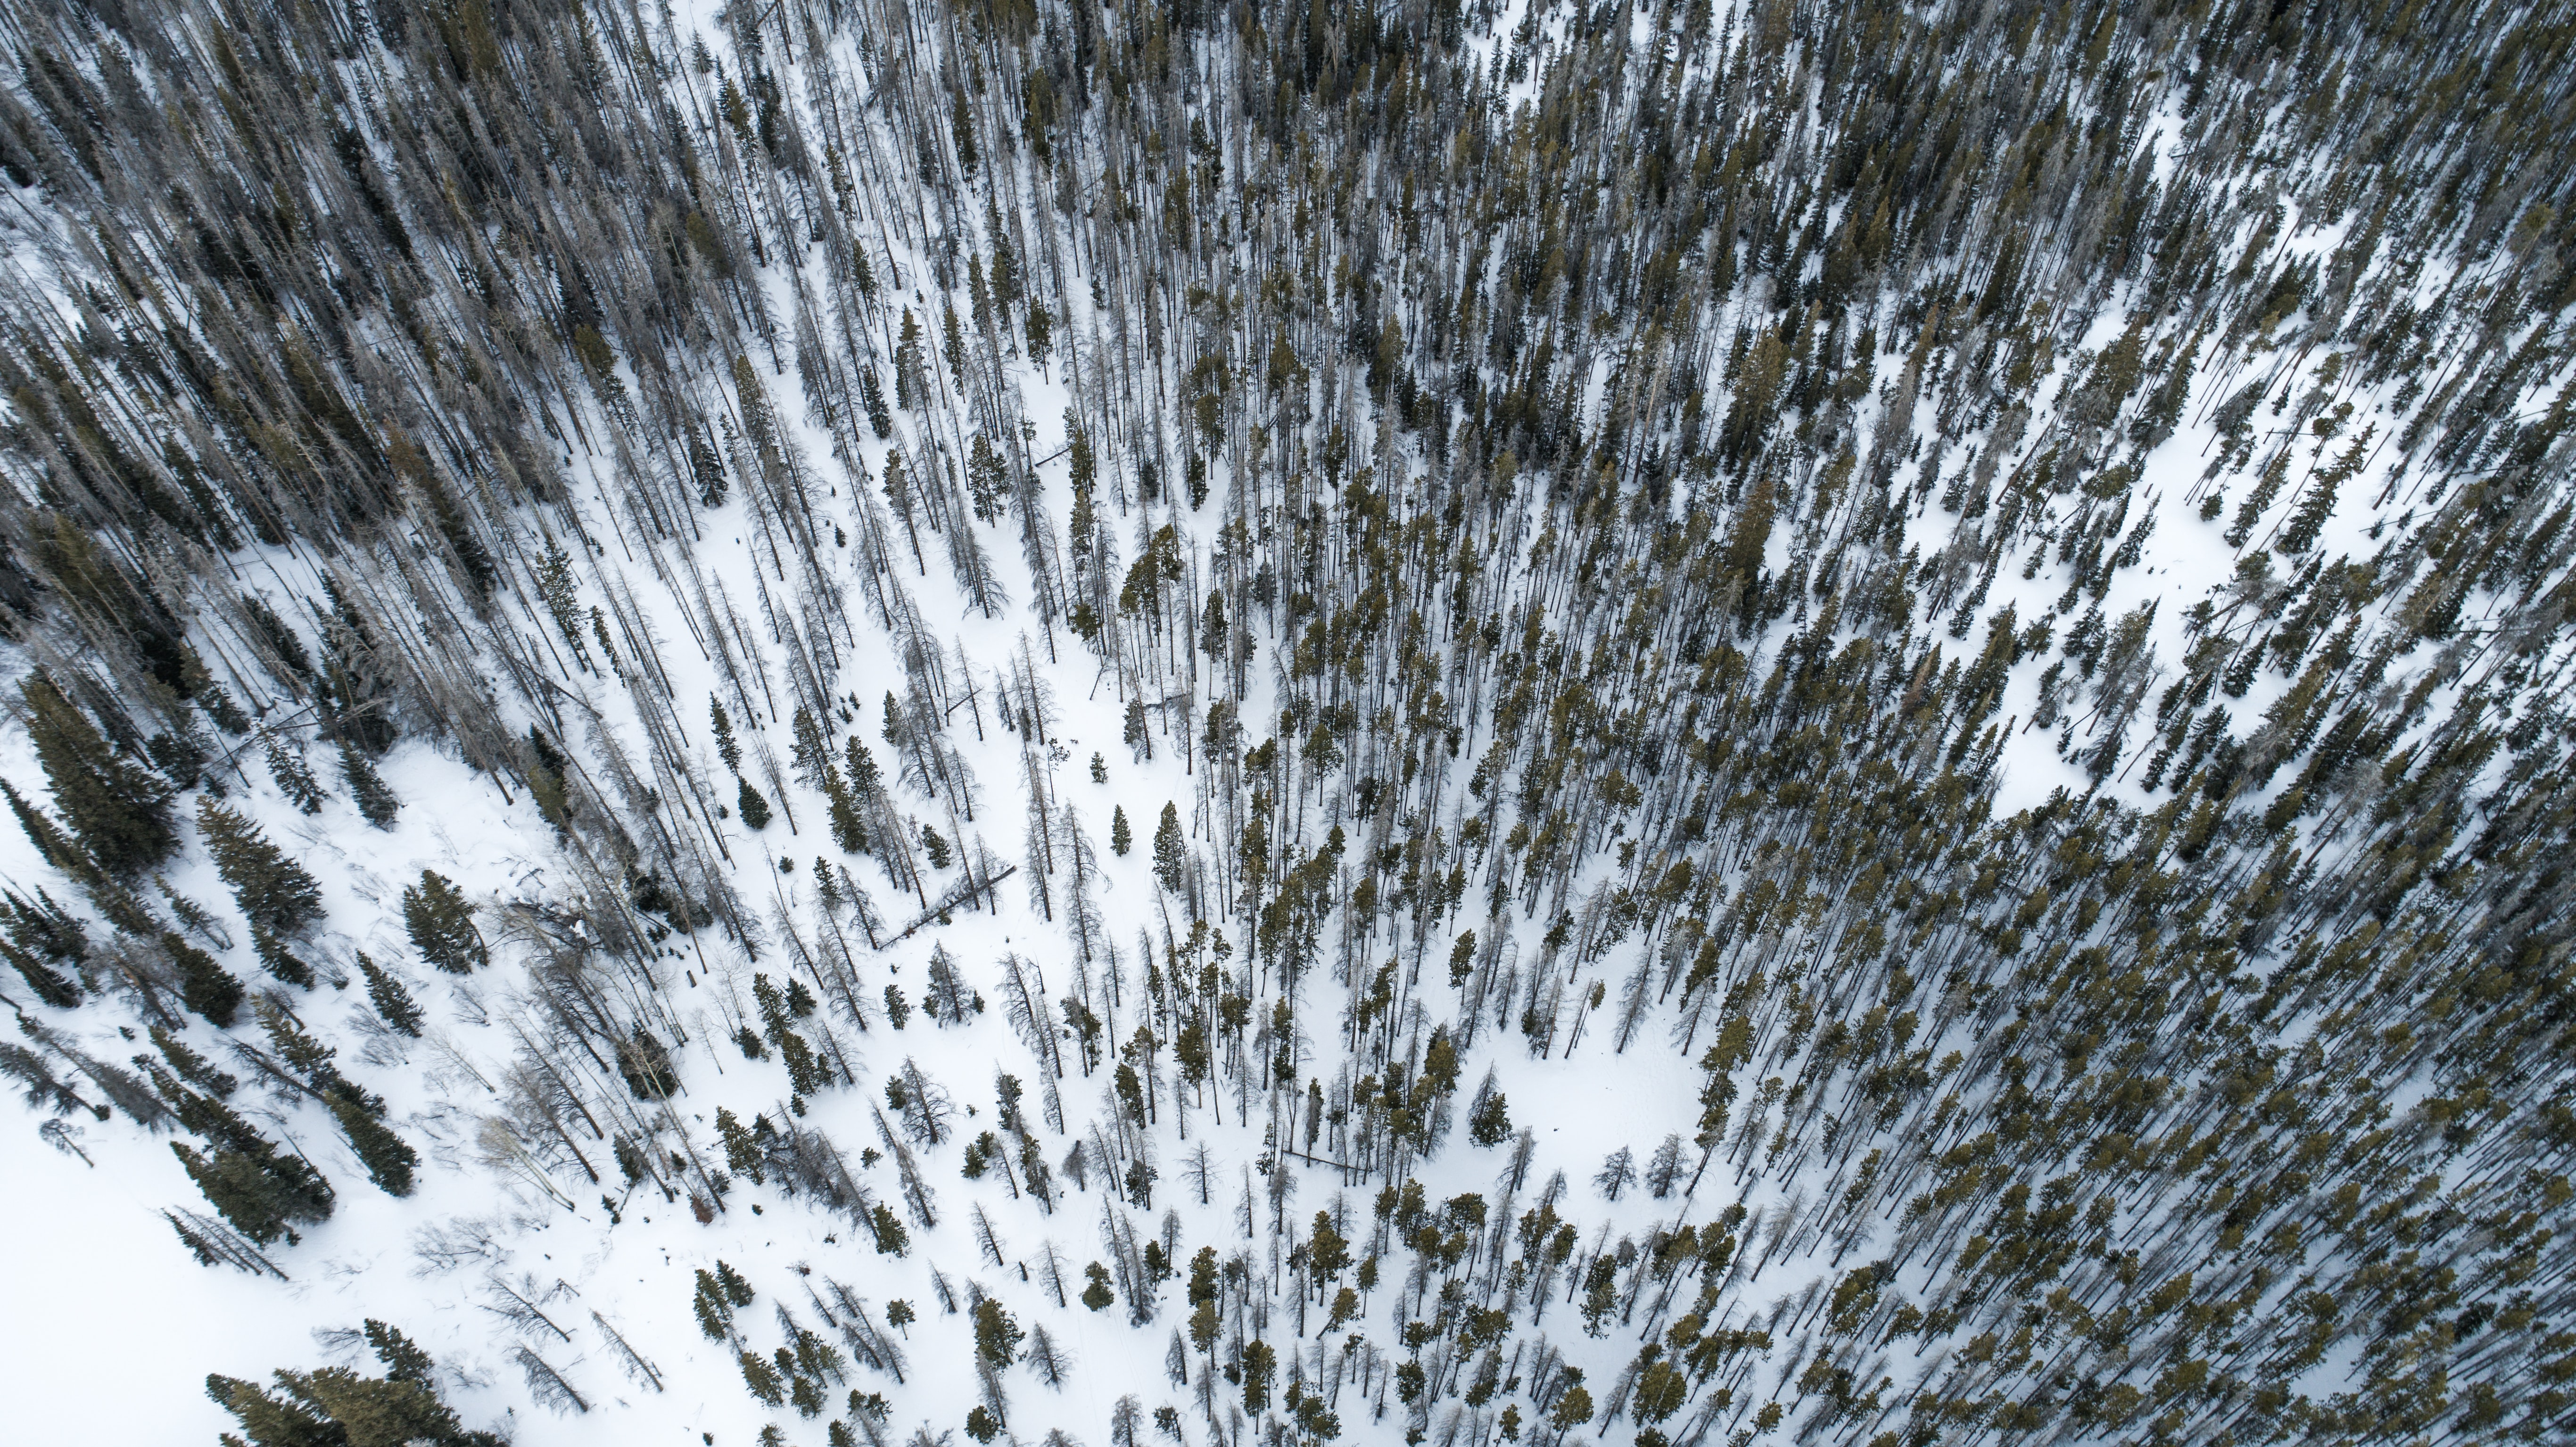 A drone shot of a stretch of a coniferous forest under a snow blanket